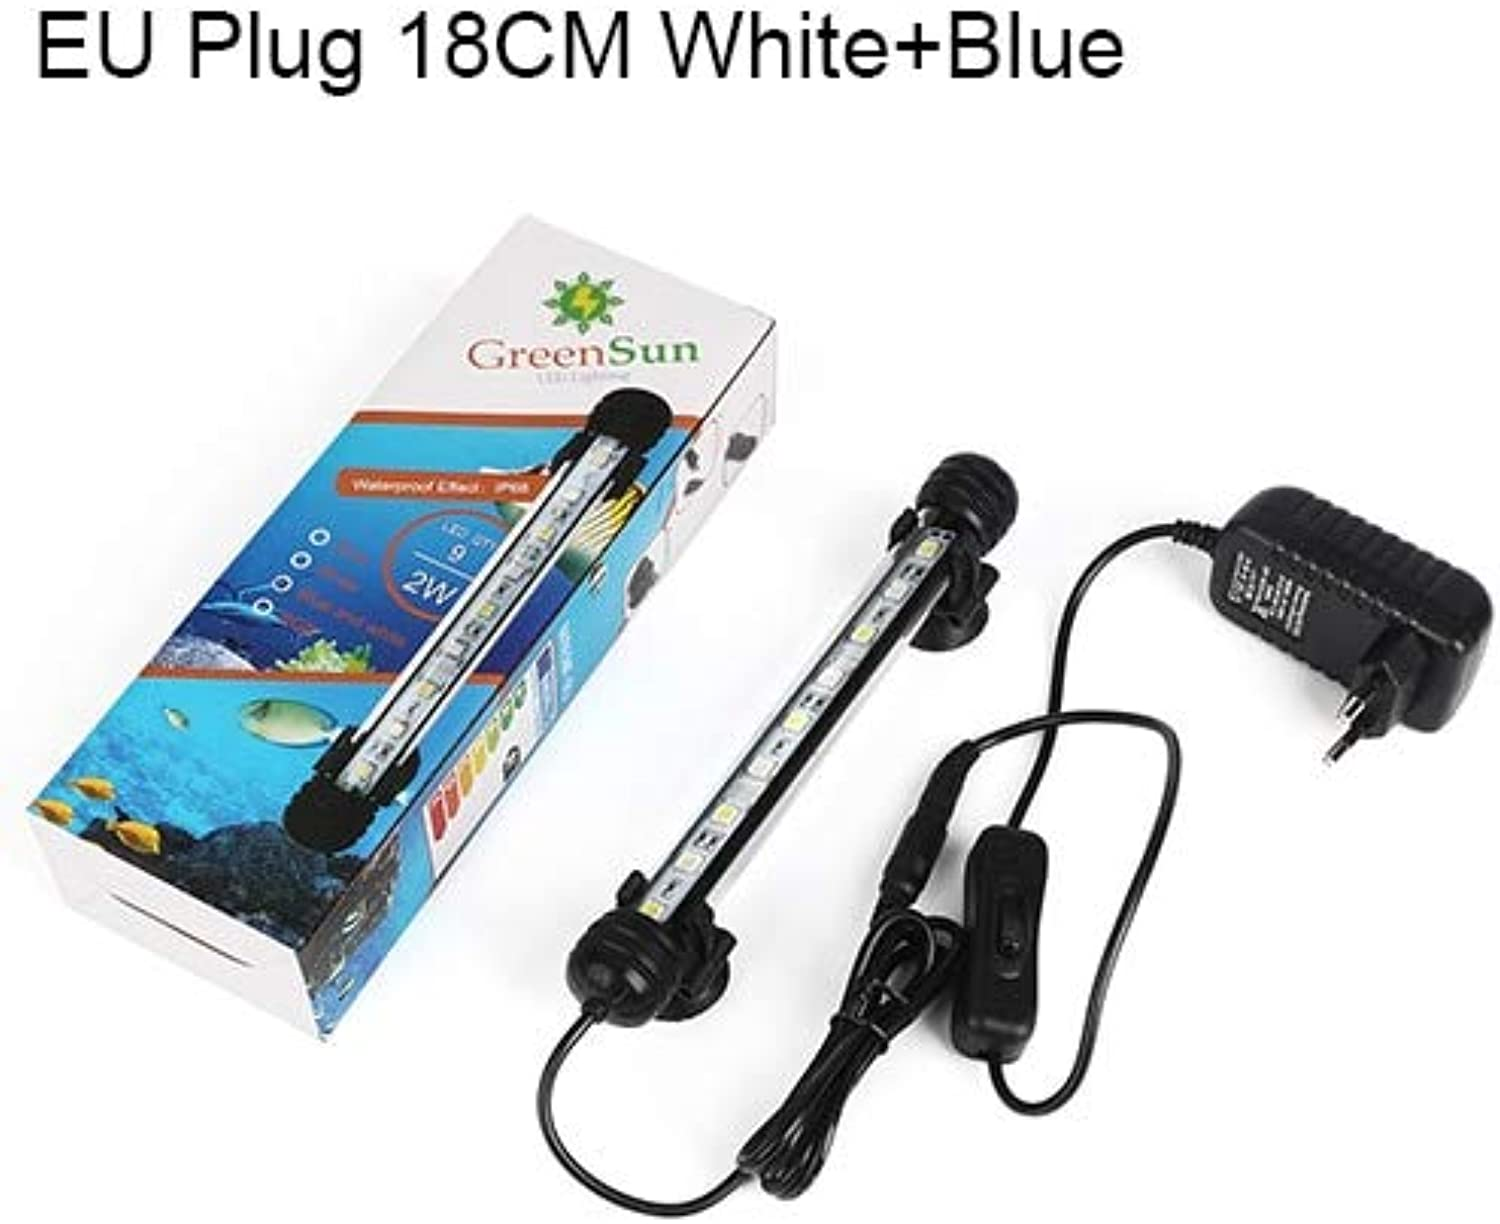 Pukido Aquarium Light Fish Tank LED Lighting Waterproof Submersible Bar Tube Clip Lamp Aquariums Decor Accessories bluee White  (color  White with bluee 18cm)